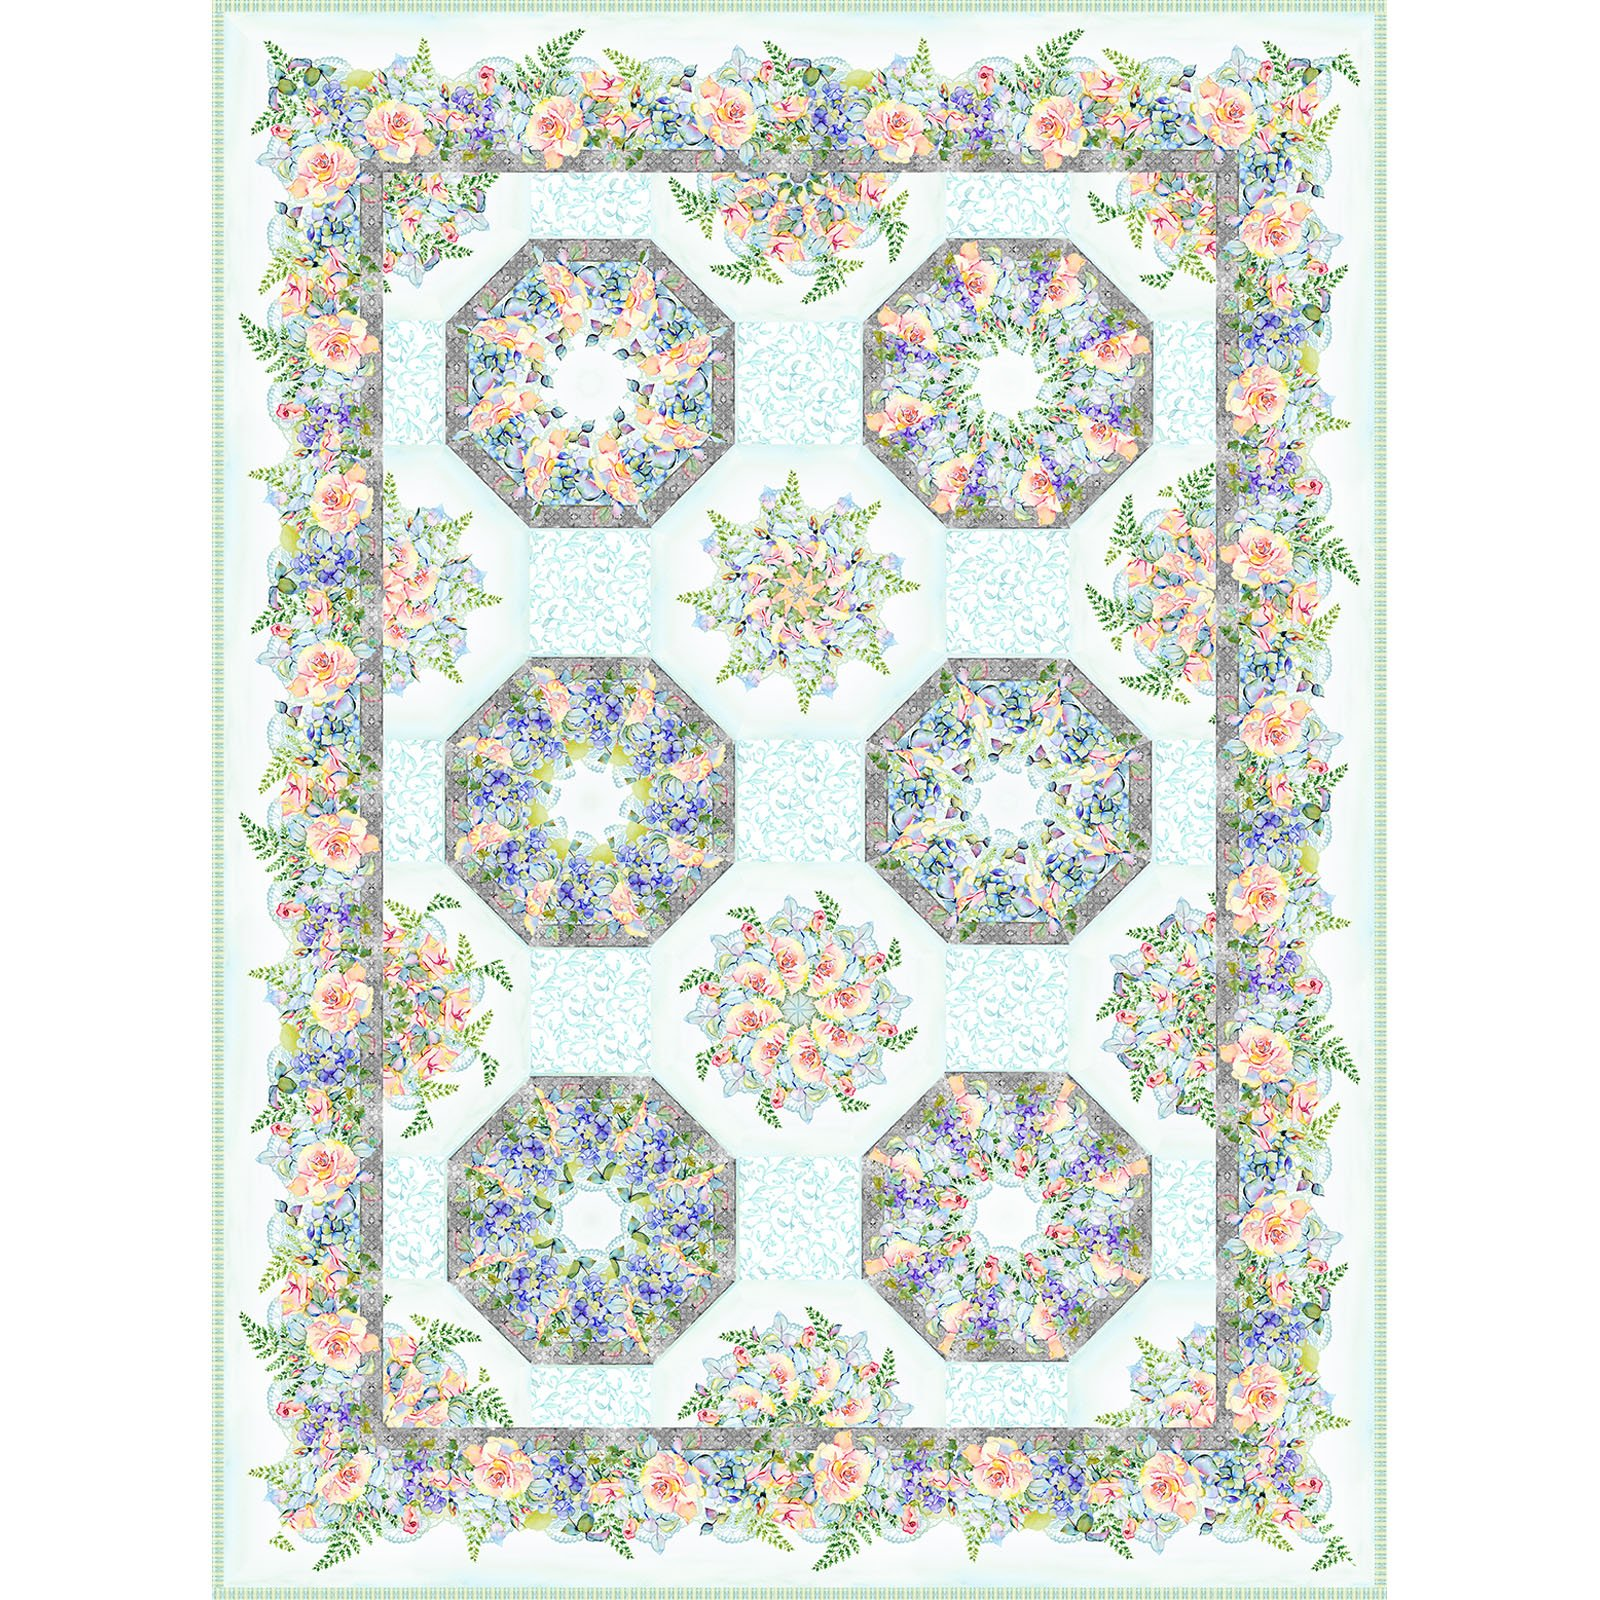 INTH-PAT K PATT - THE PATRICIA COLLECTION - KALEIDOSCOPE QUILT PATTERN- DELIVERY MARCH 2021